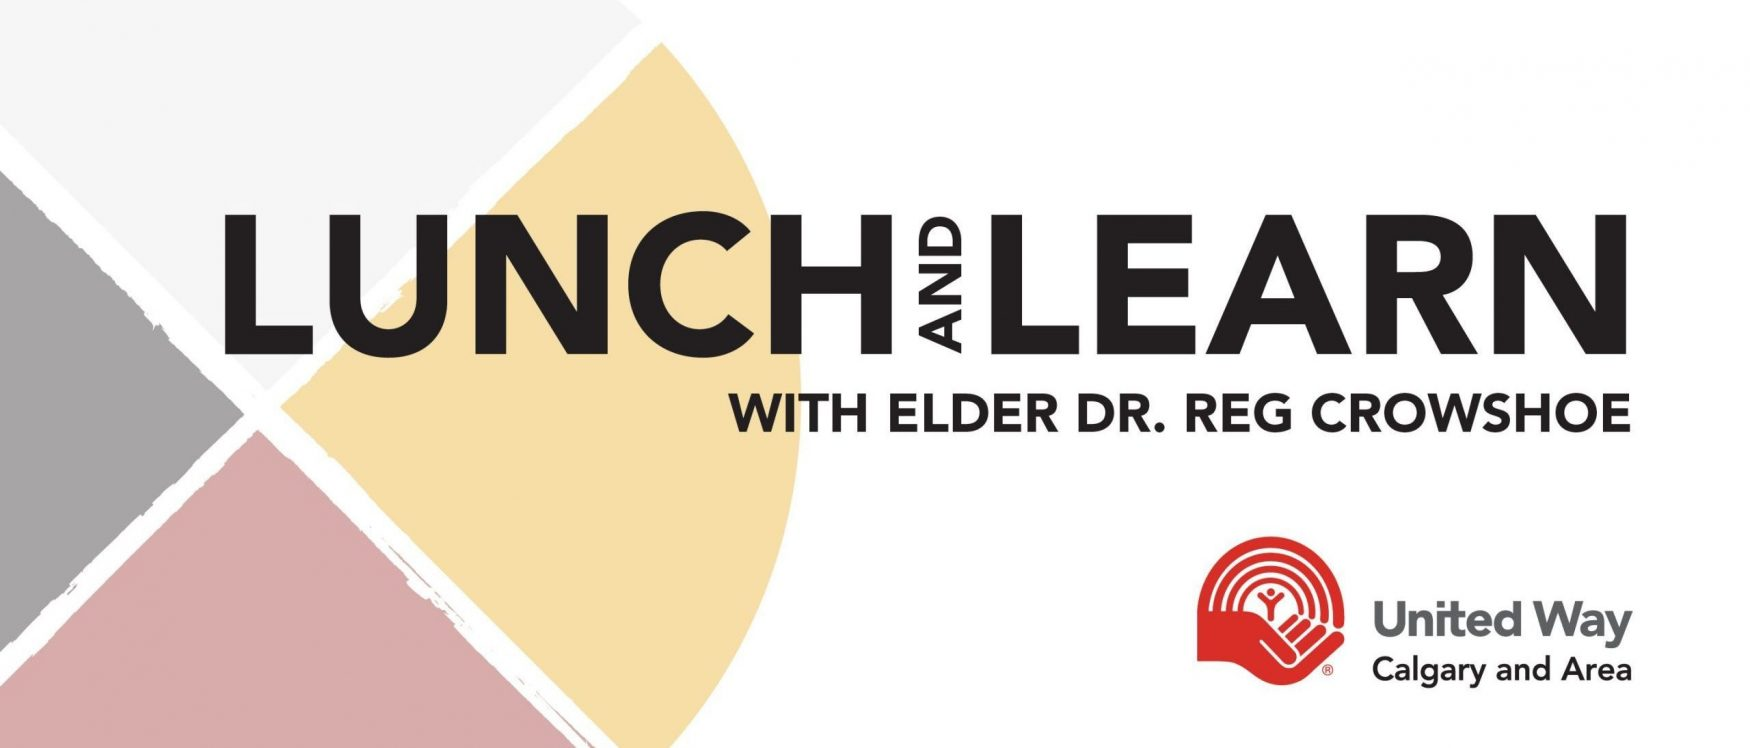 Lunch and Learn with Elder Dr. Reg Crowshoe